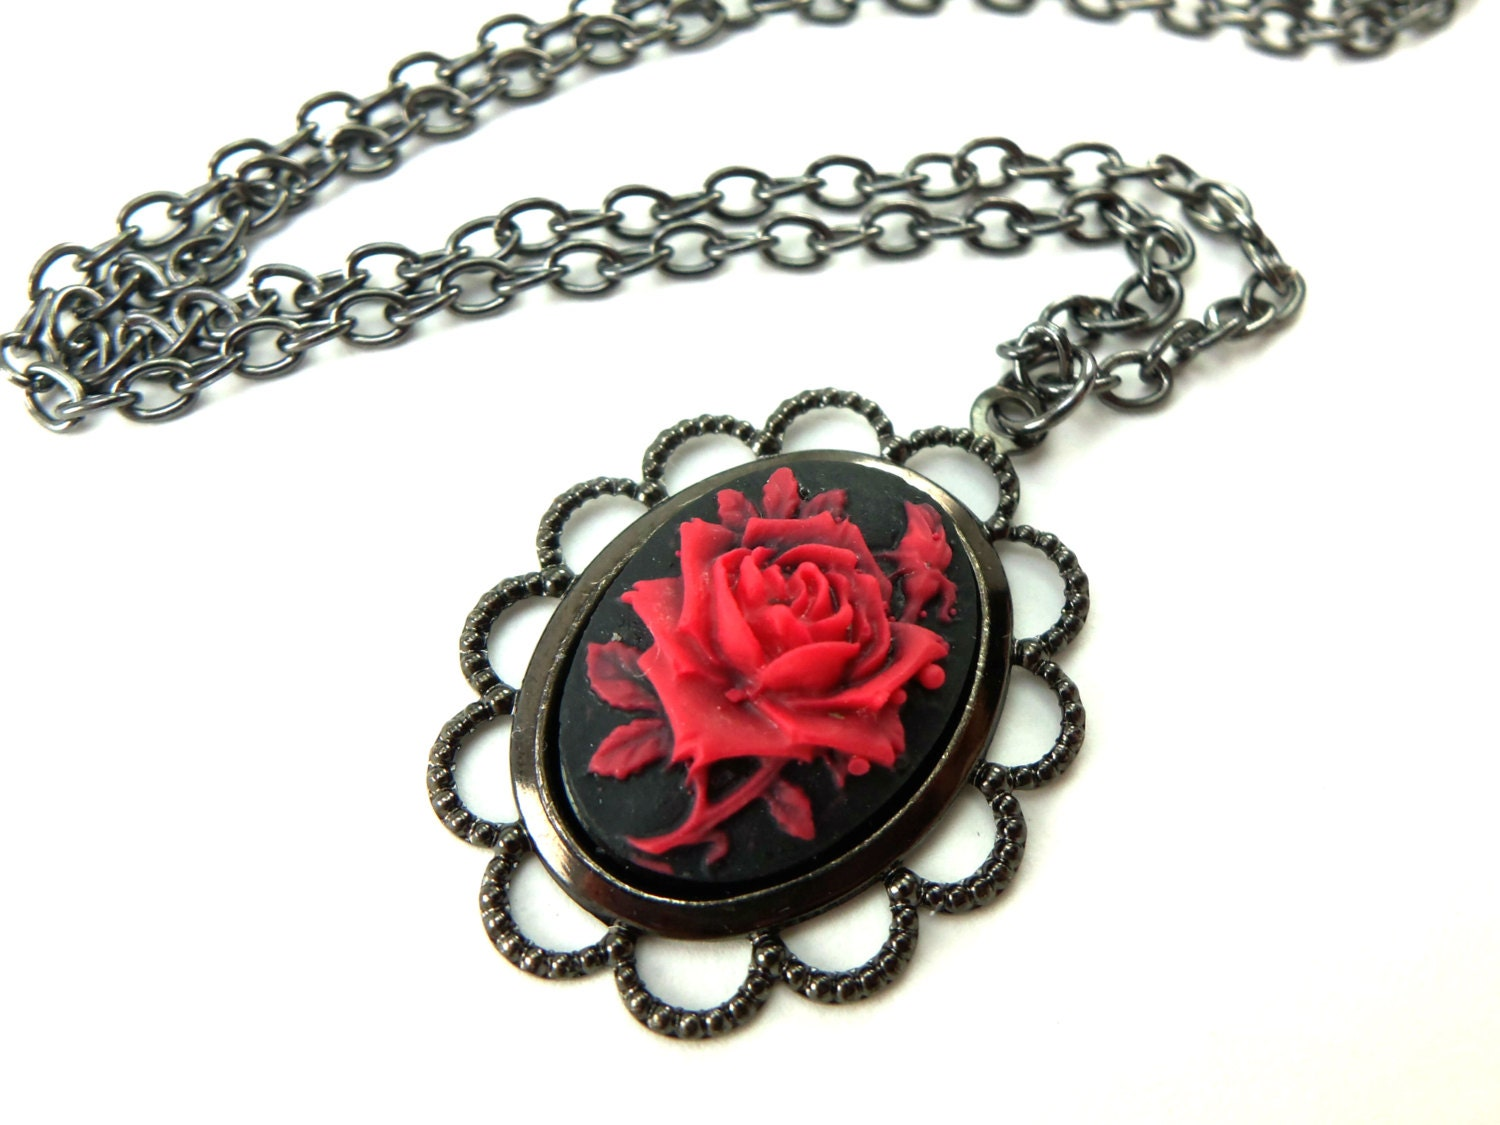 Gothic rose necklace black red rose cameo pendant dark zoom mozeypictures Choice Image